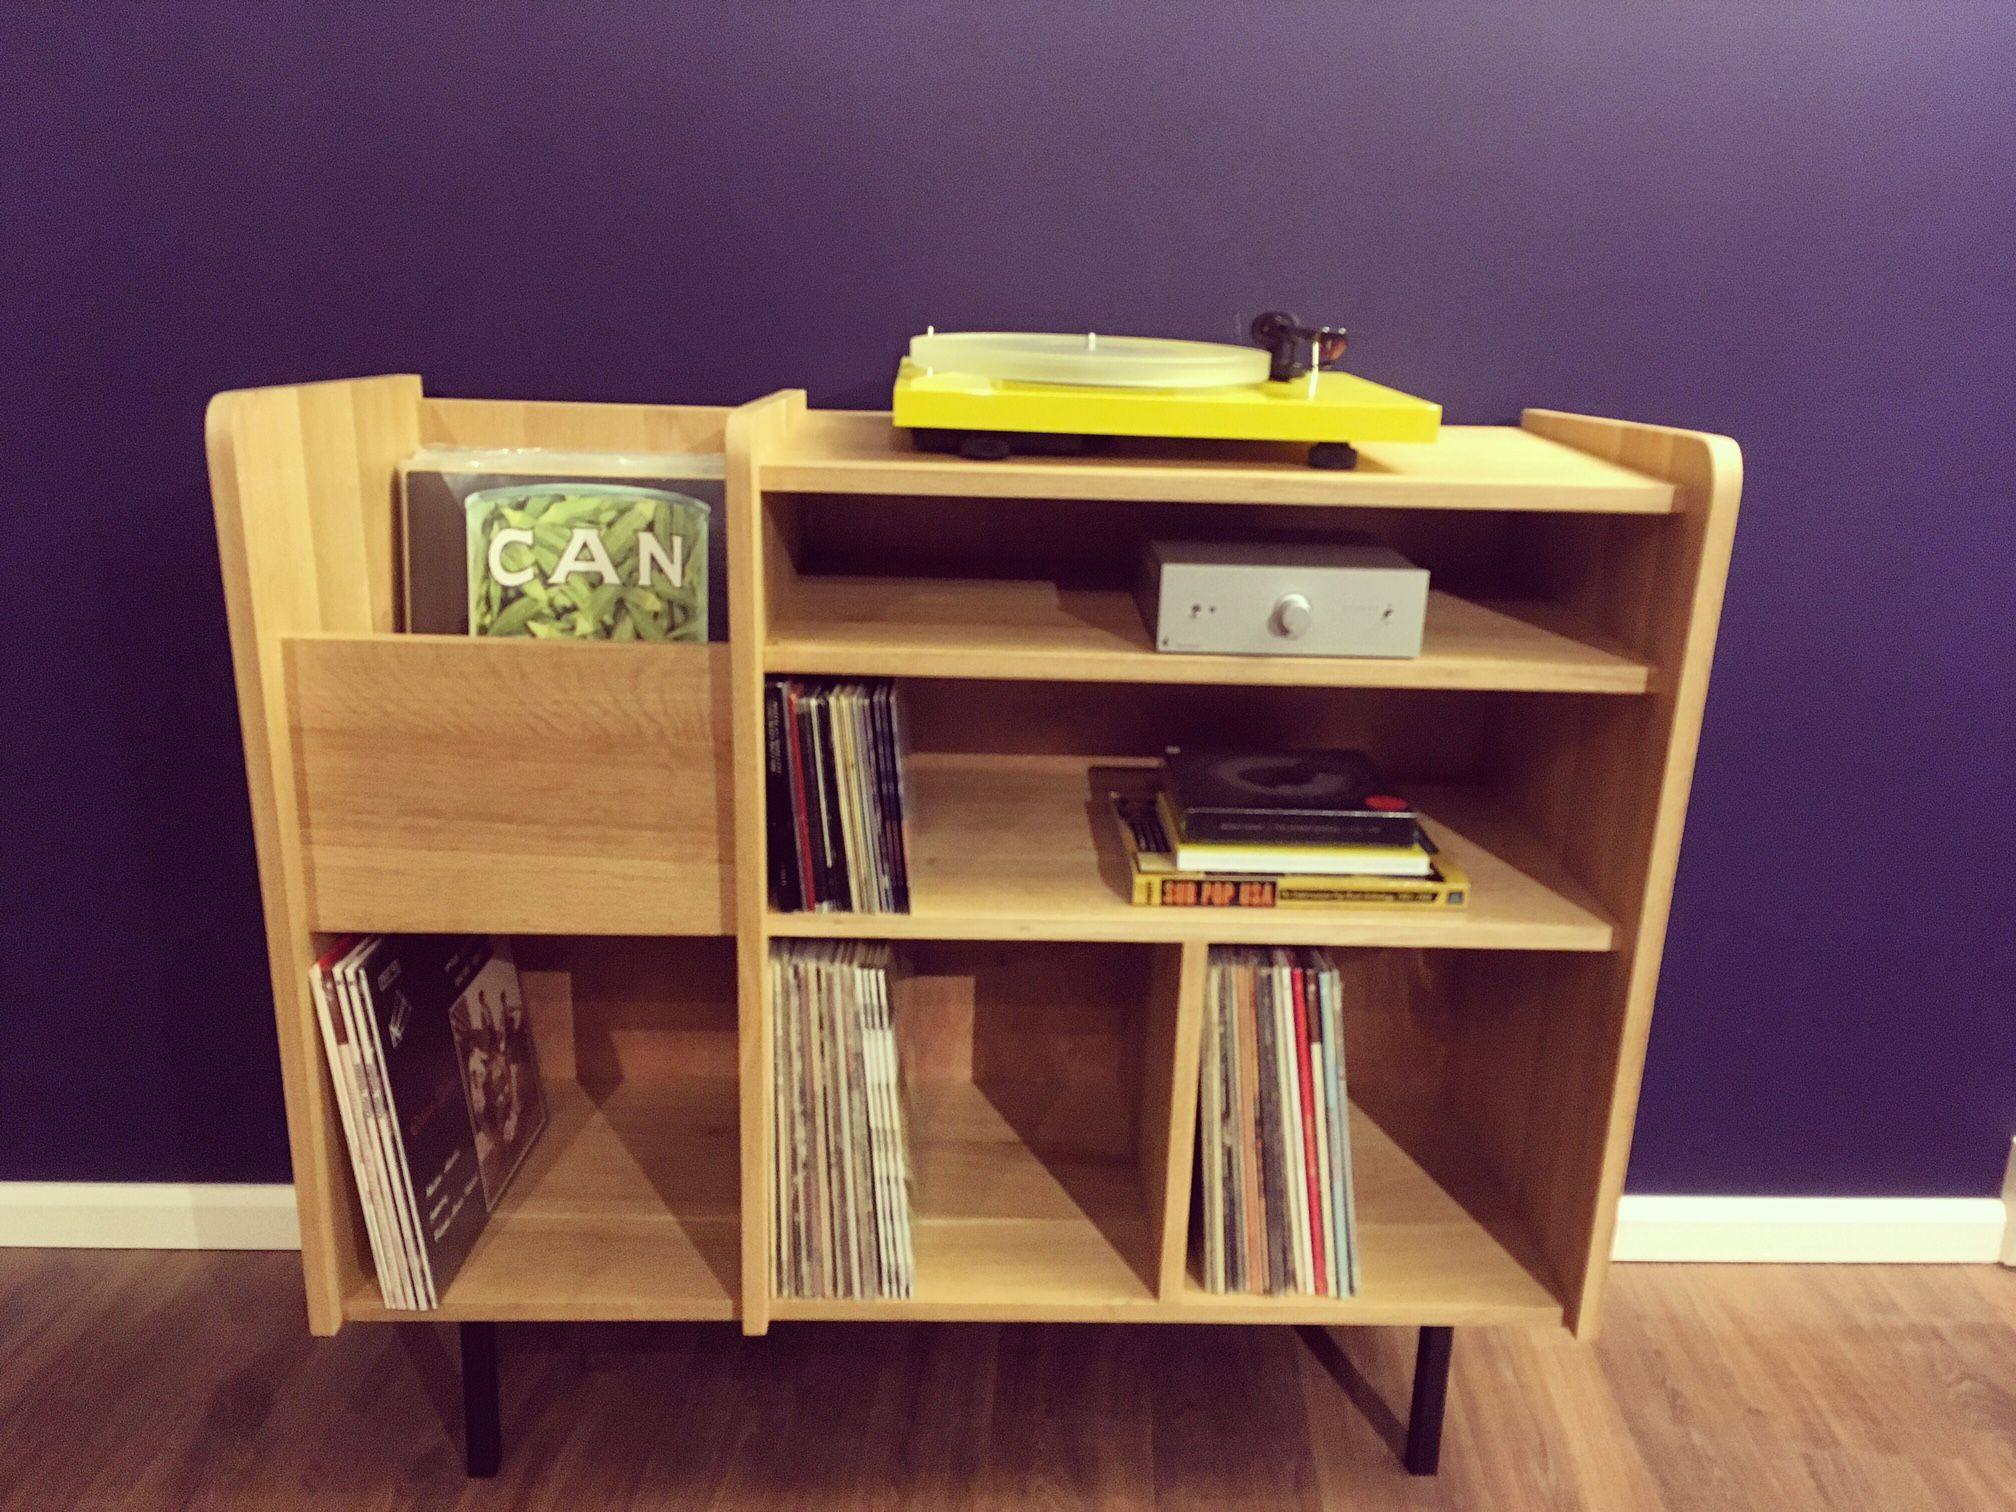 Nationale 7 Meubles Hi Fi Vinyles In 2019 Furniture Home Decor Home